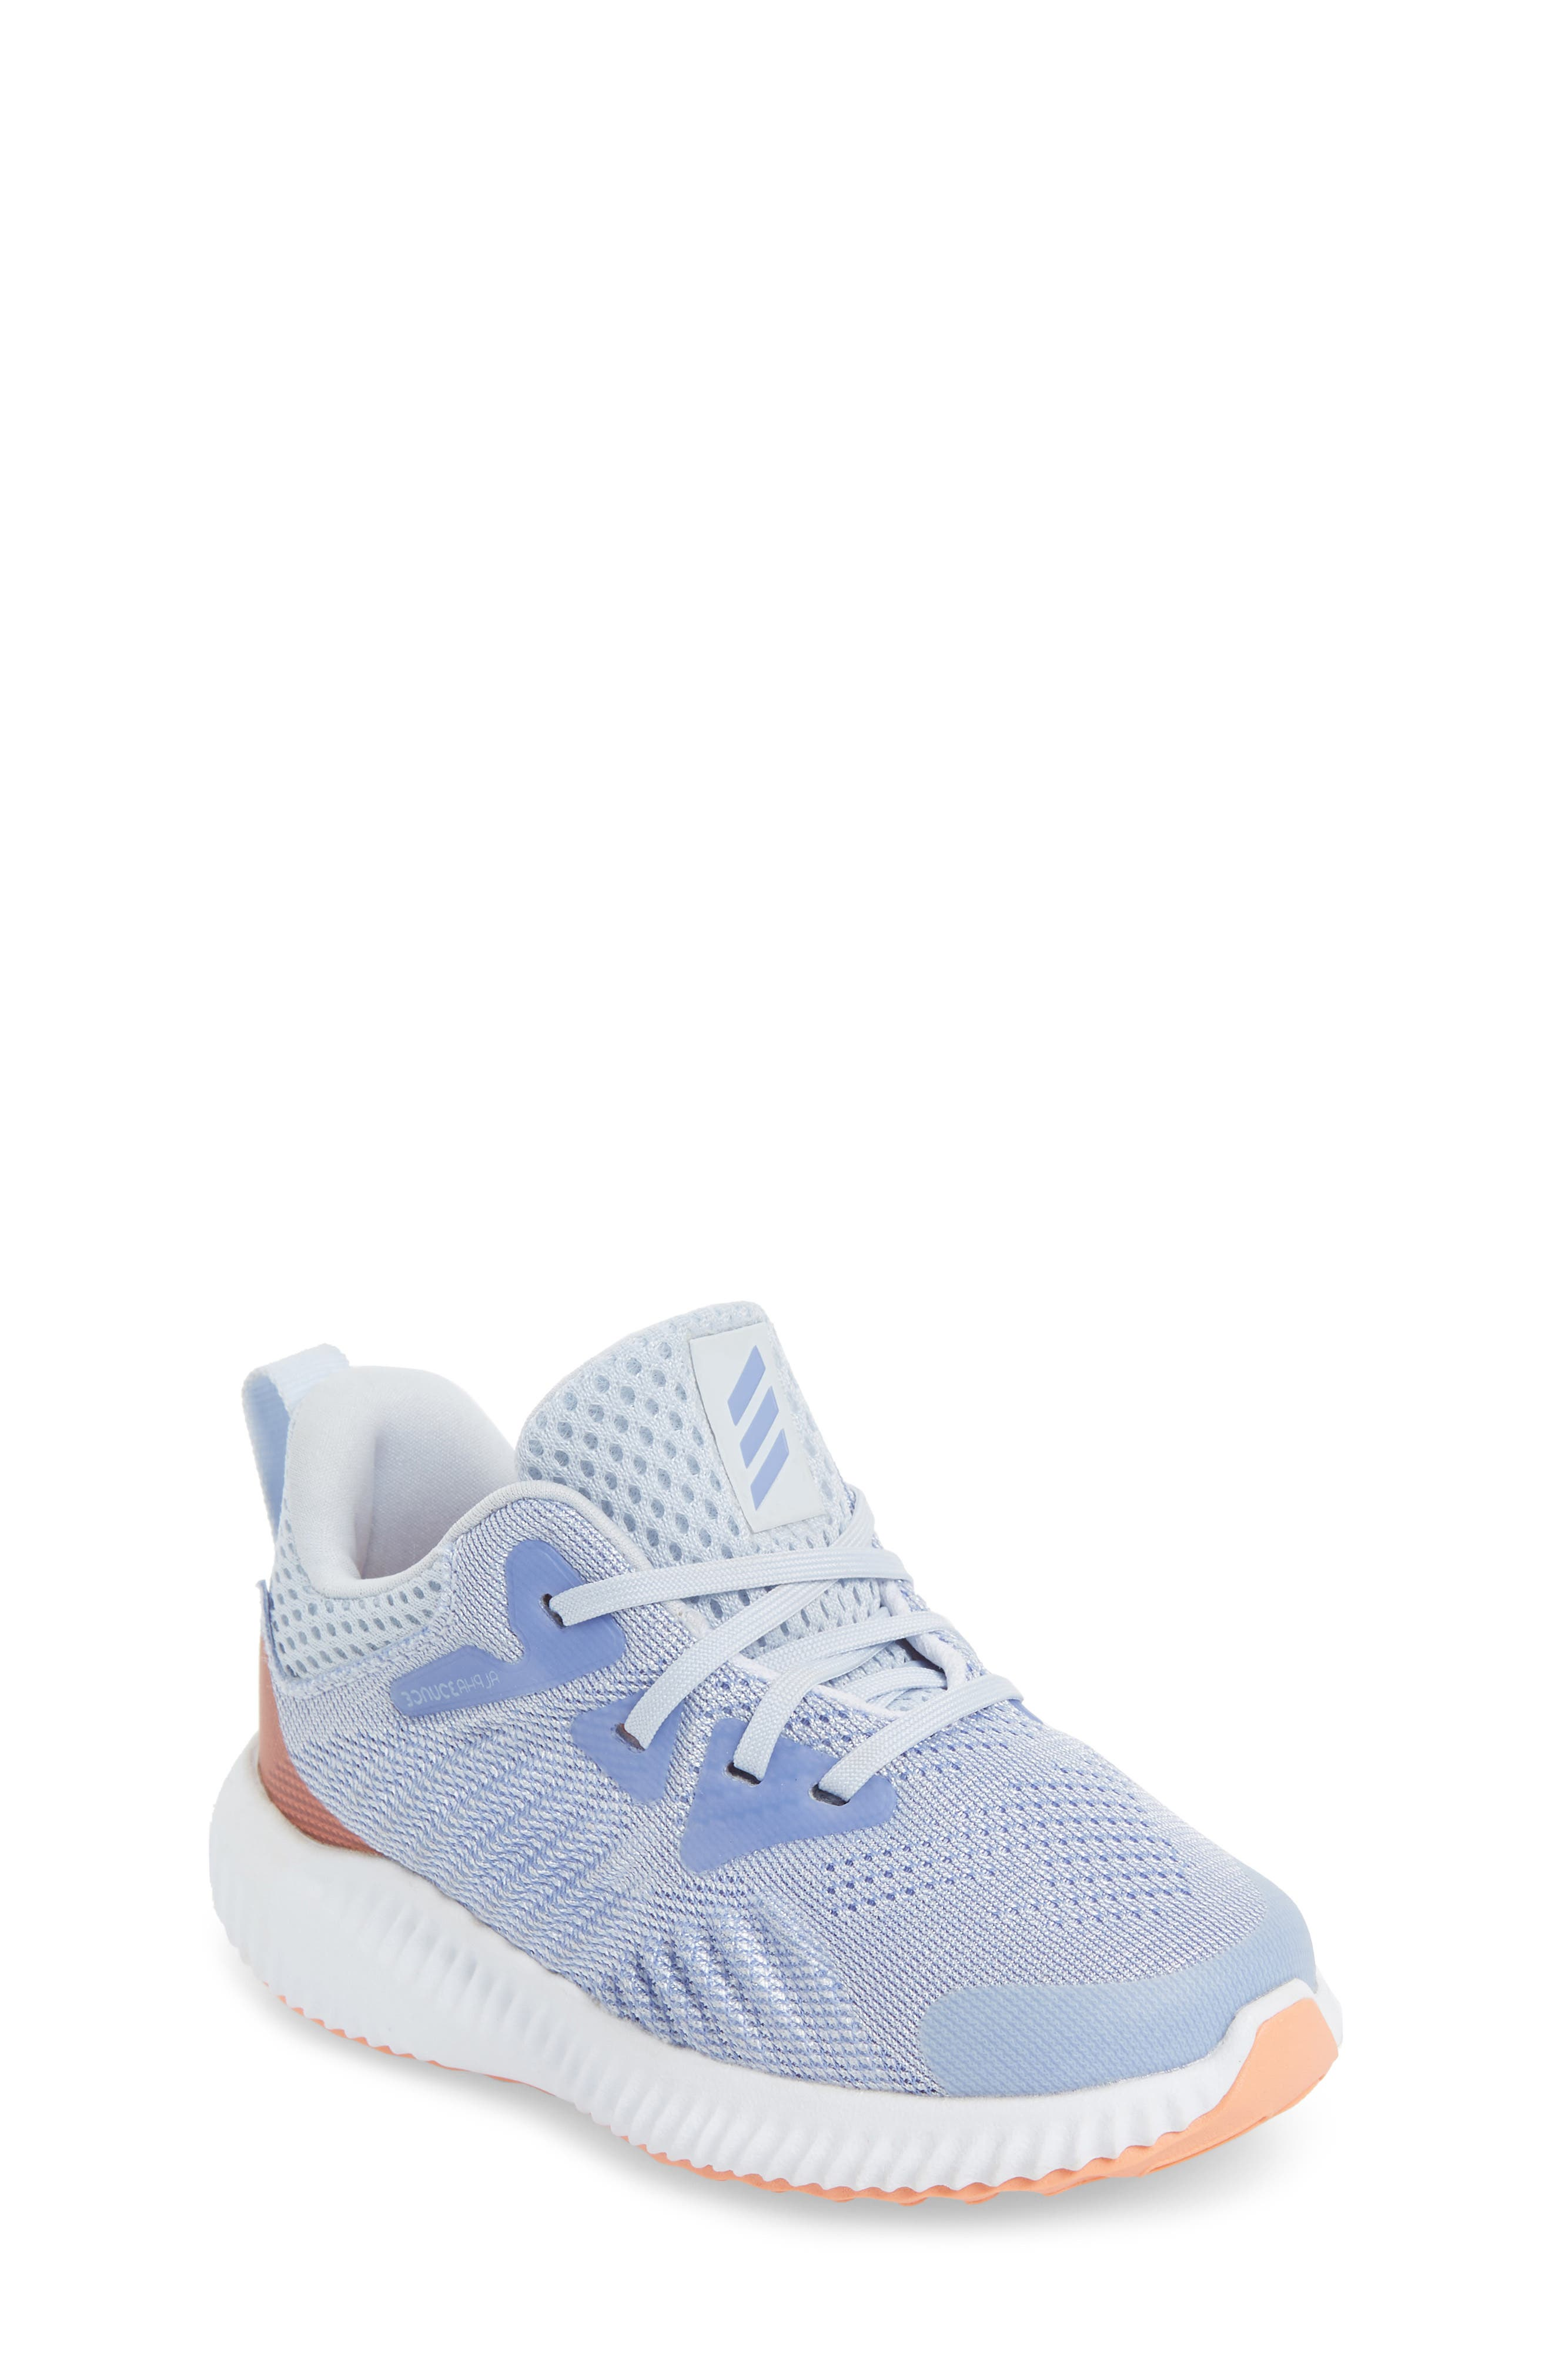 AlphaBounce Beyond Running Shoe,                             Main thumbnail 1, color,                             Blue/ Chalk Purple/ White